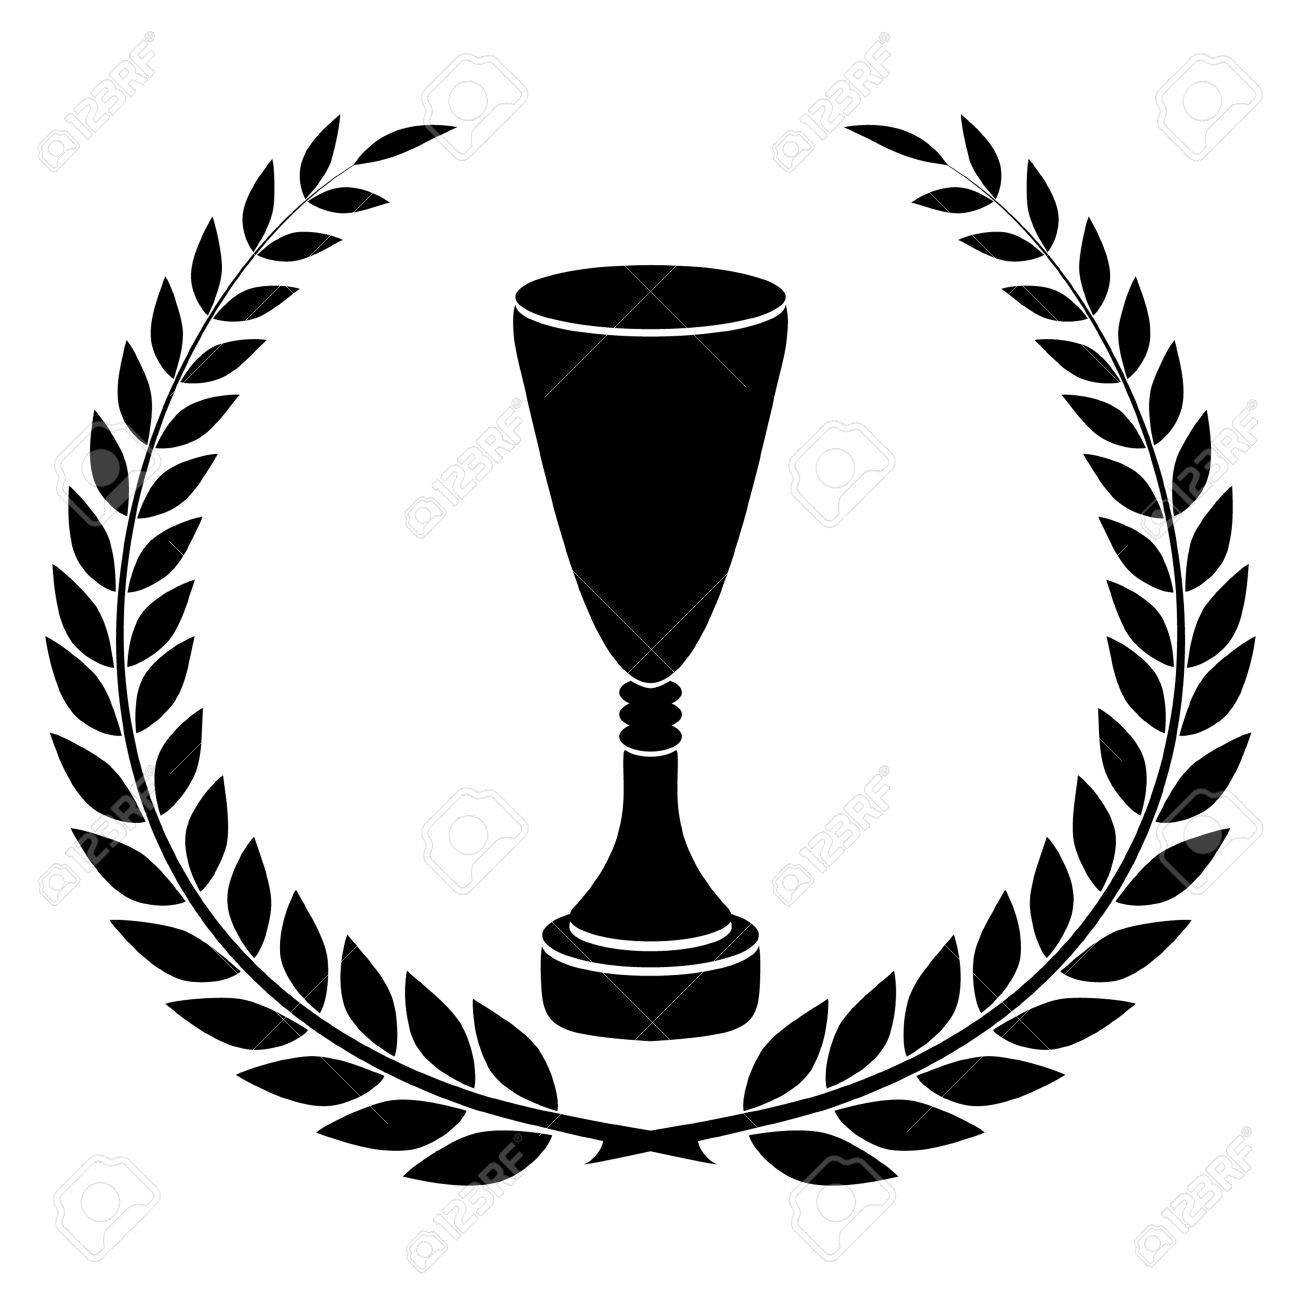 Black Silhouette Of Champions Cup Award Design Stock Vector